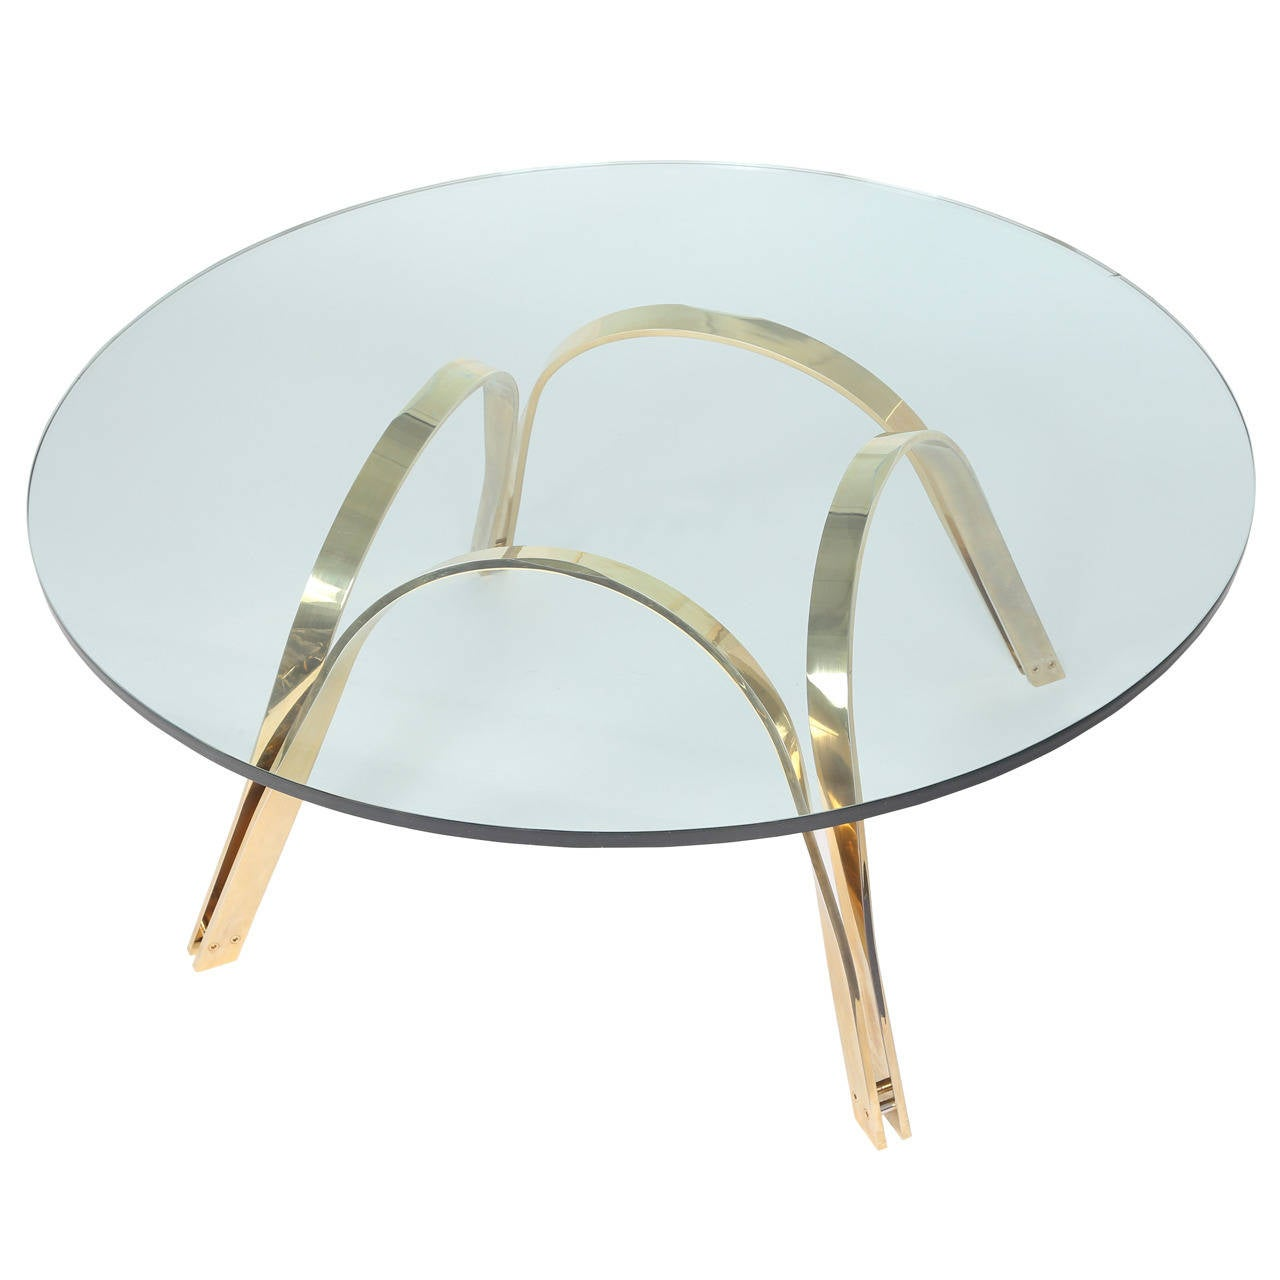 Roger Sprunger-Style Brass and Glass Coffee Table by Tri-Mark, circa 1970s